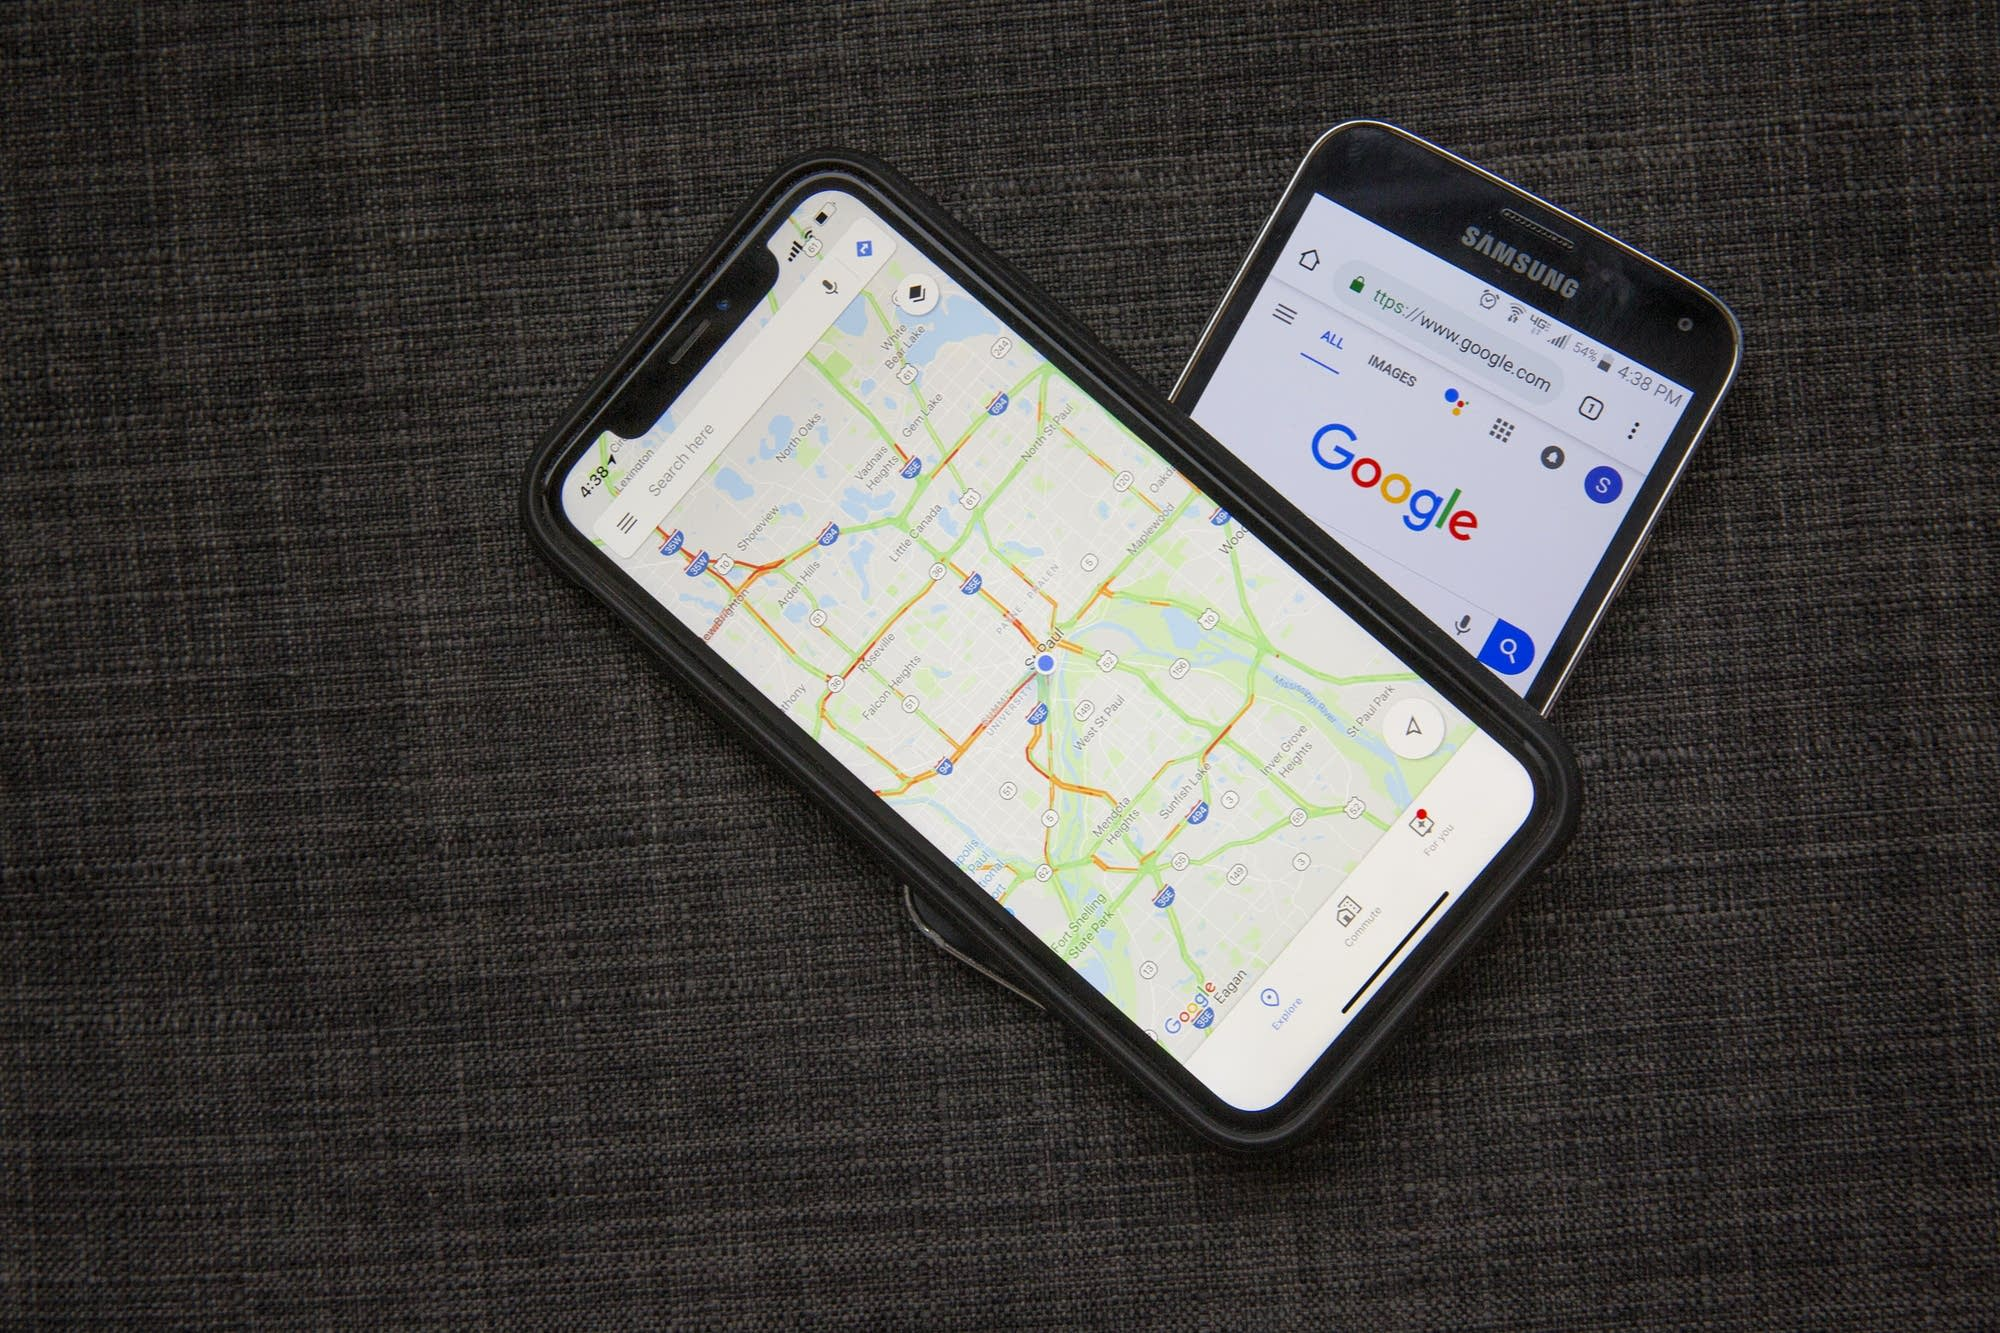 Location services may collect and share data